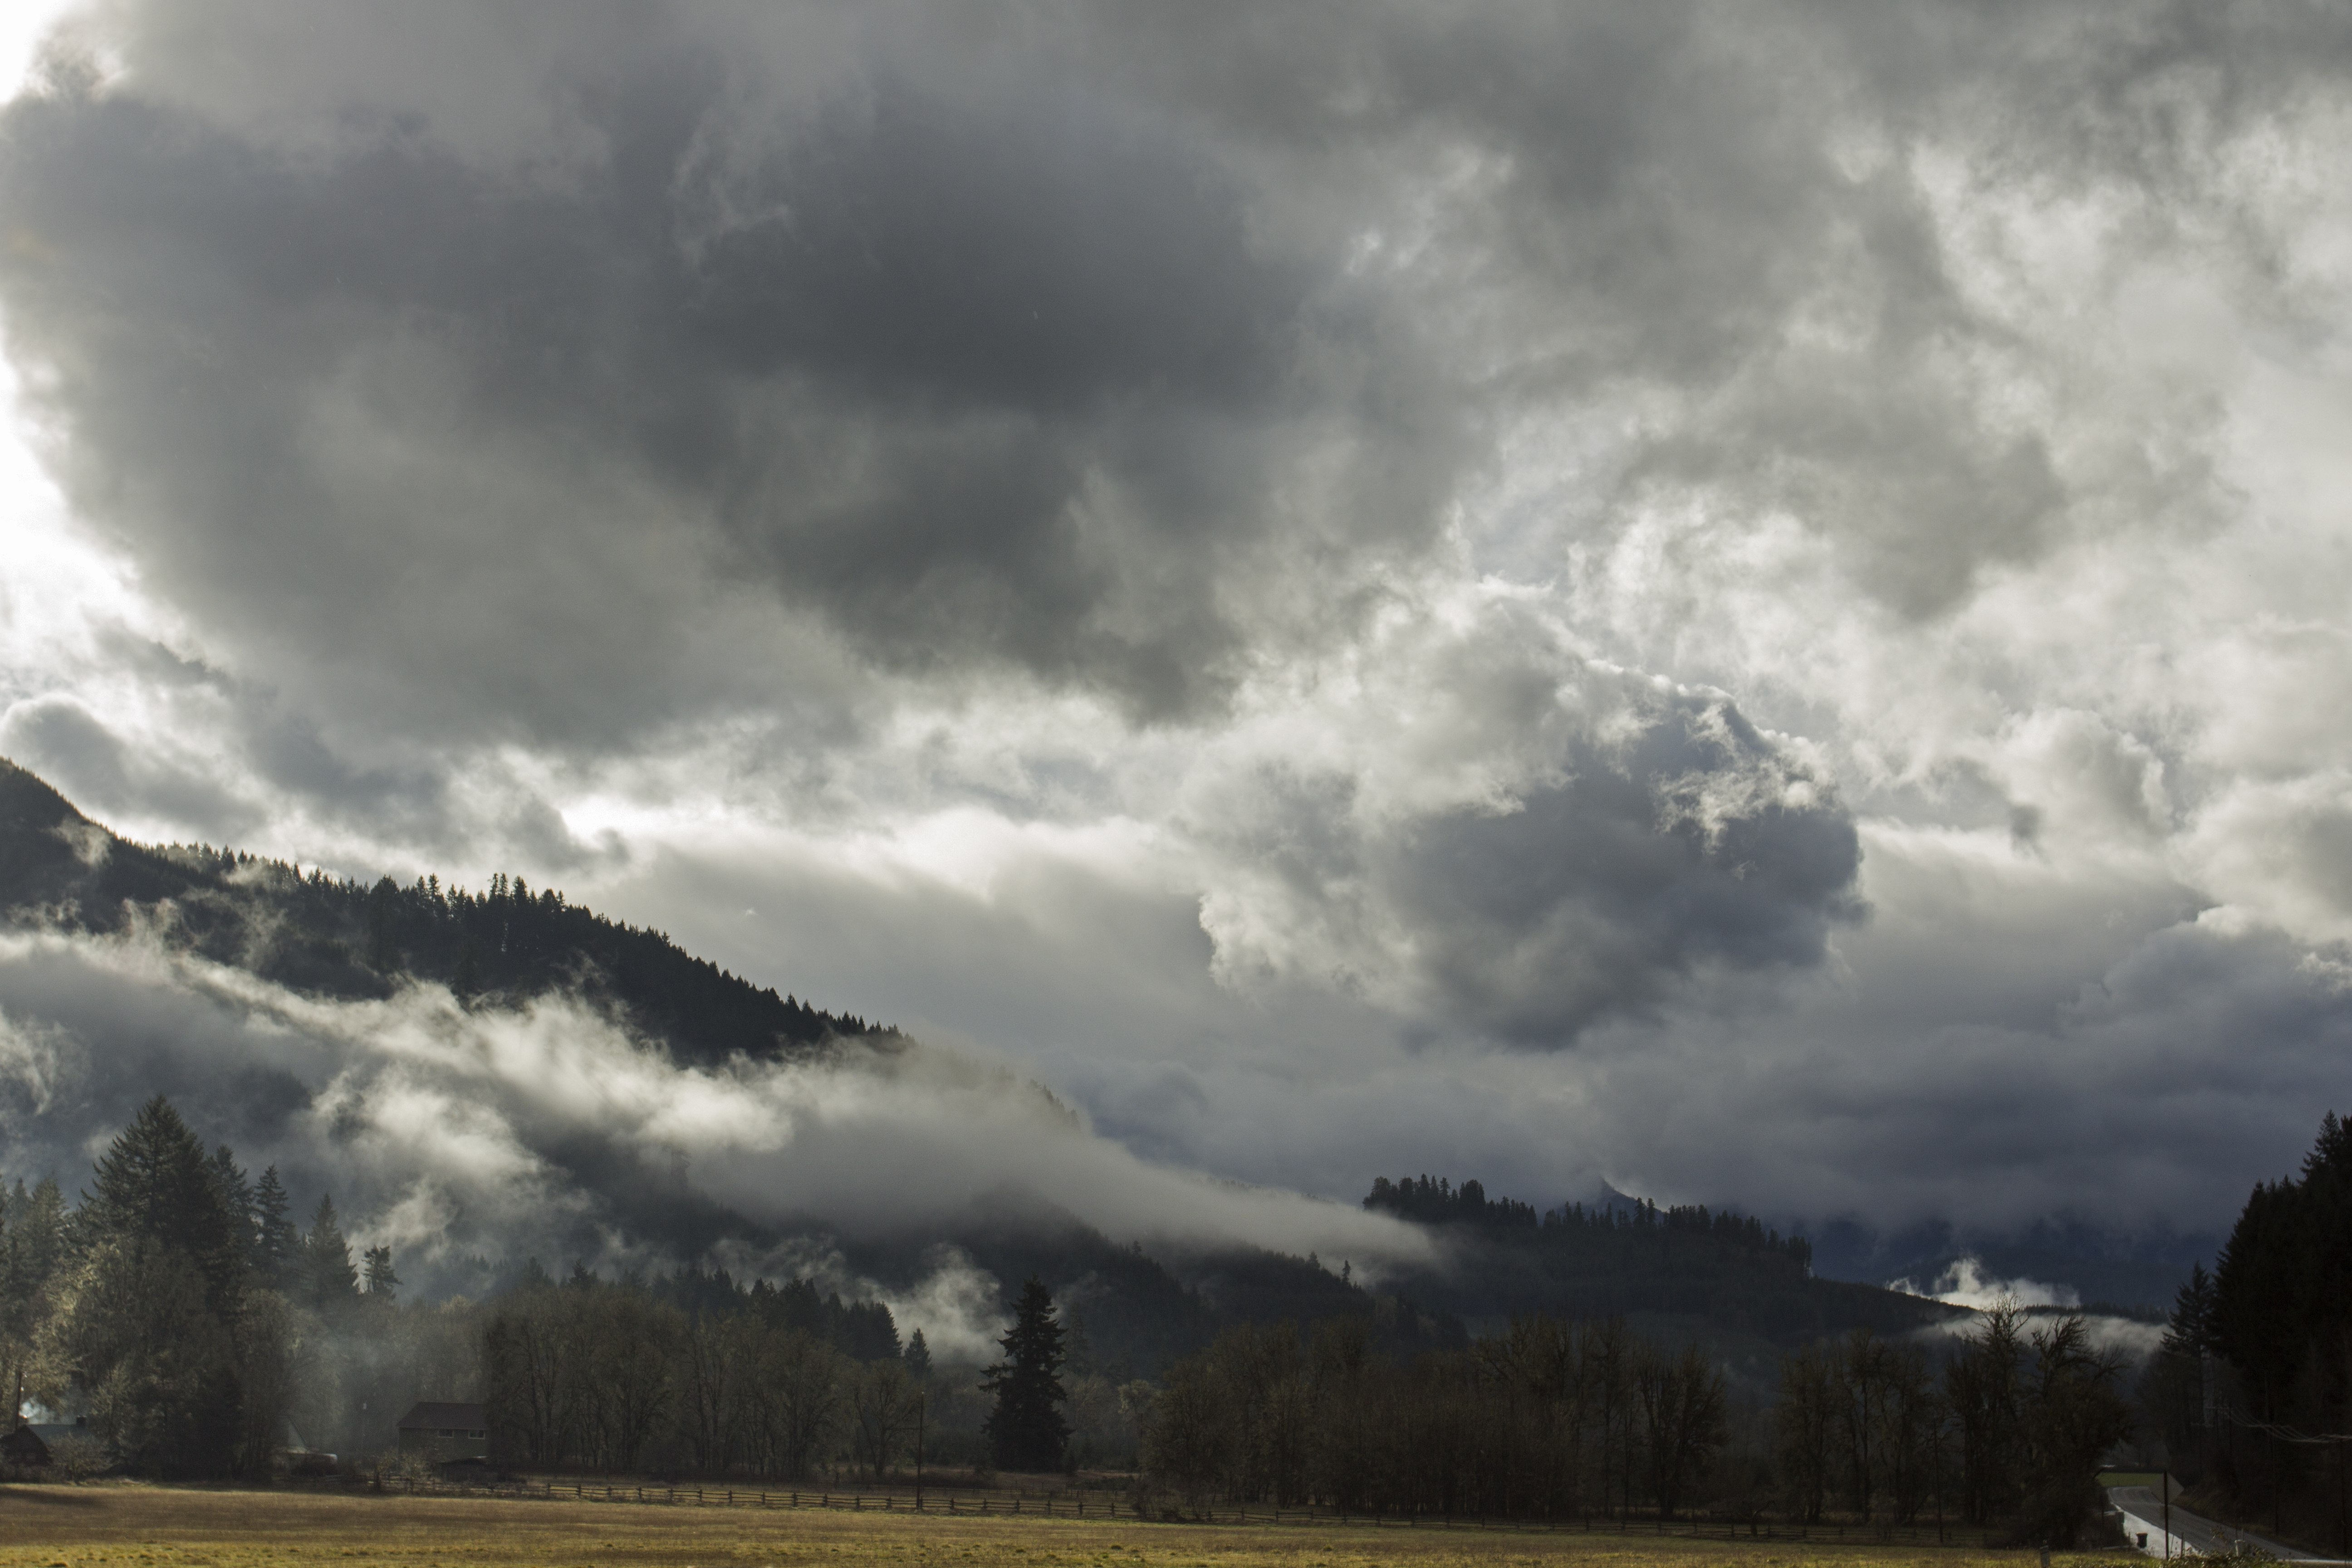 Winter clouds coastal range, Oregon, Clouds, Field, Fog, Forest, HQ Photo